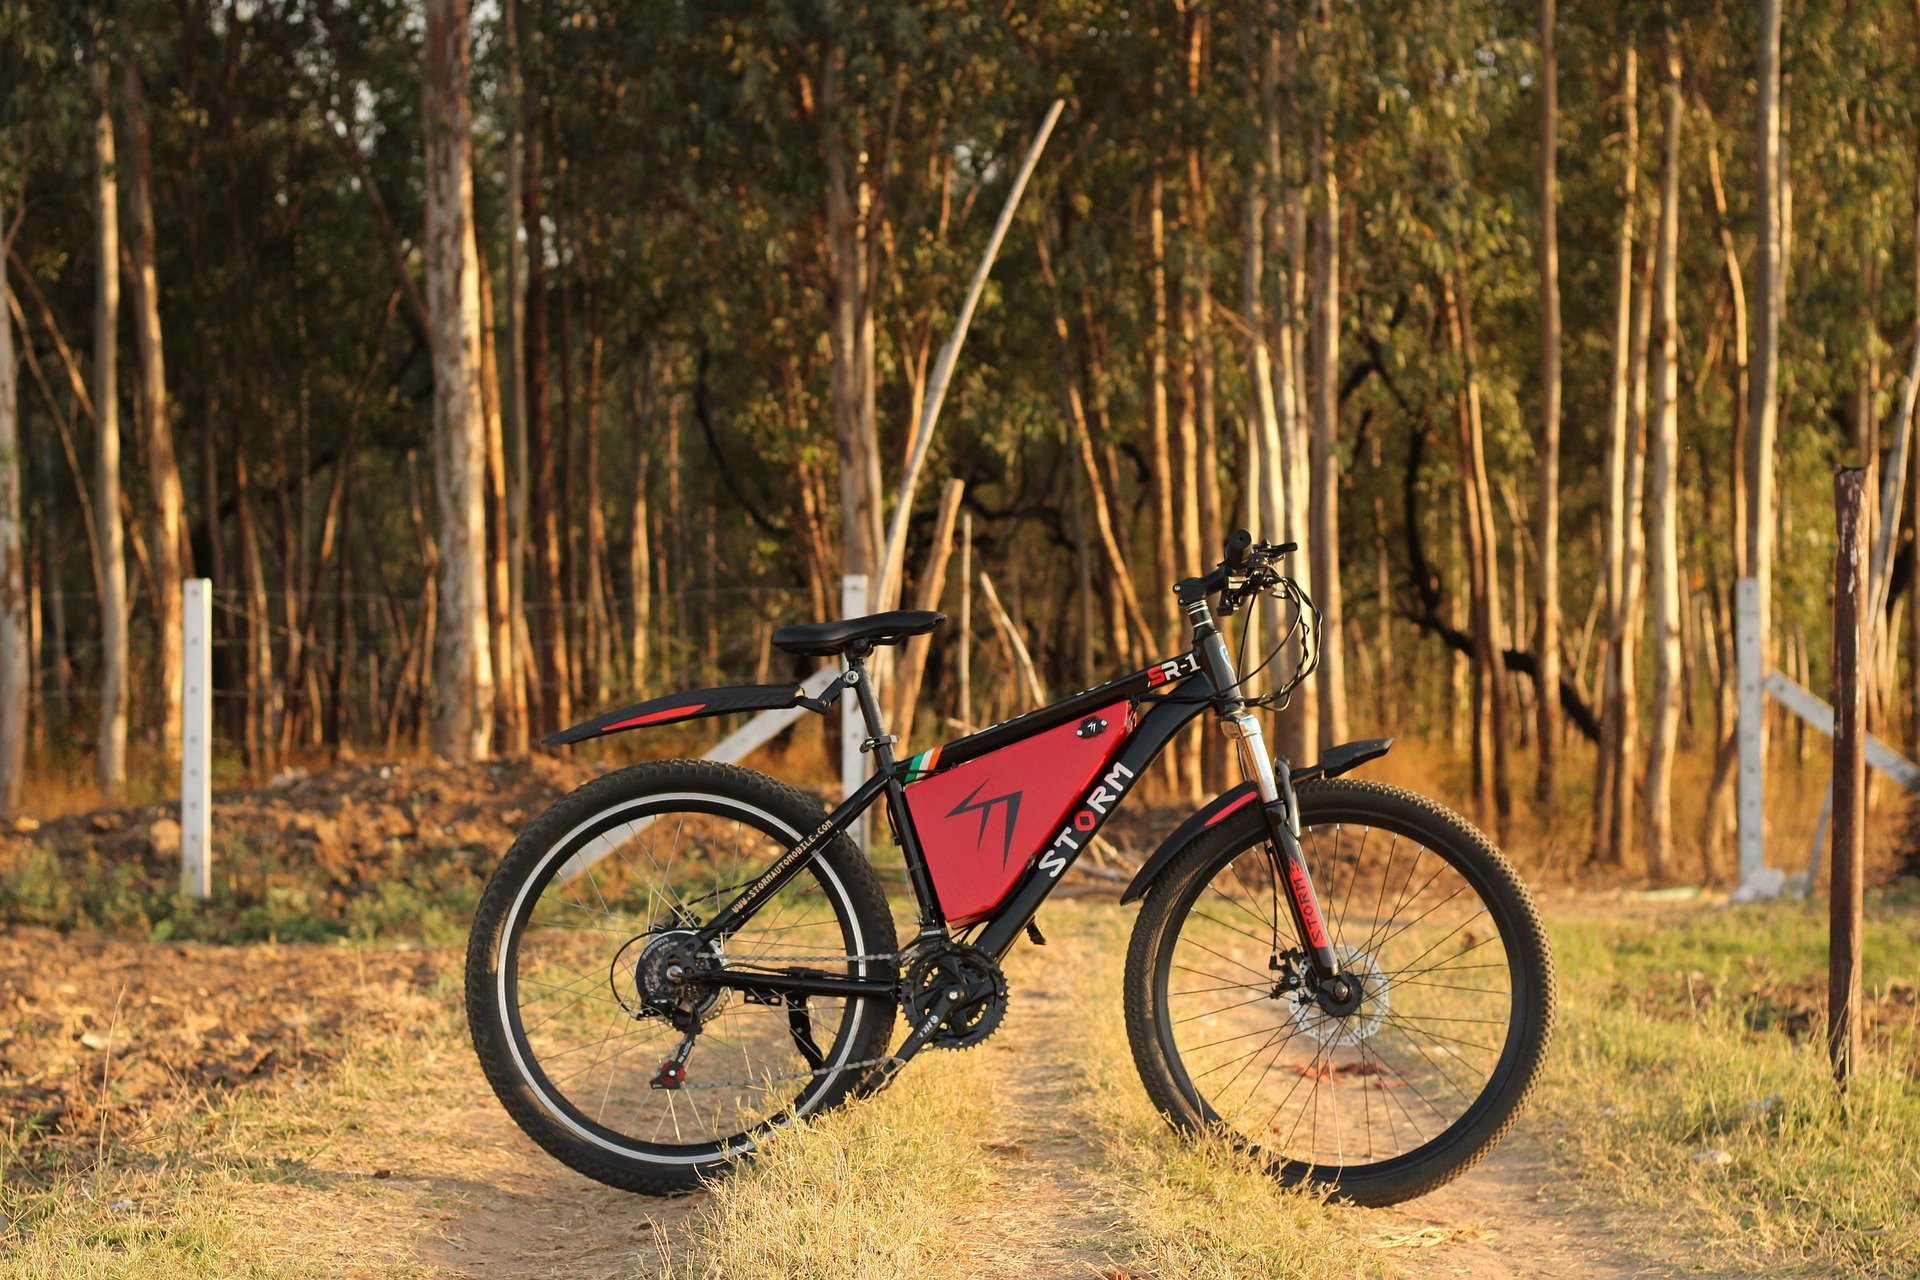 Smart e bike from Rad Power Bikes(Electronic bikes) is the thinnest and cheapest electric bike to date